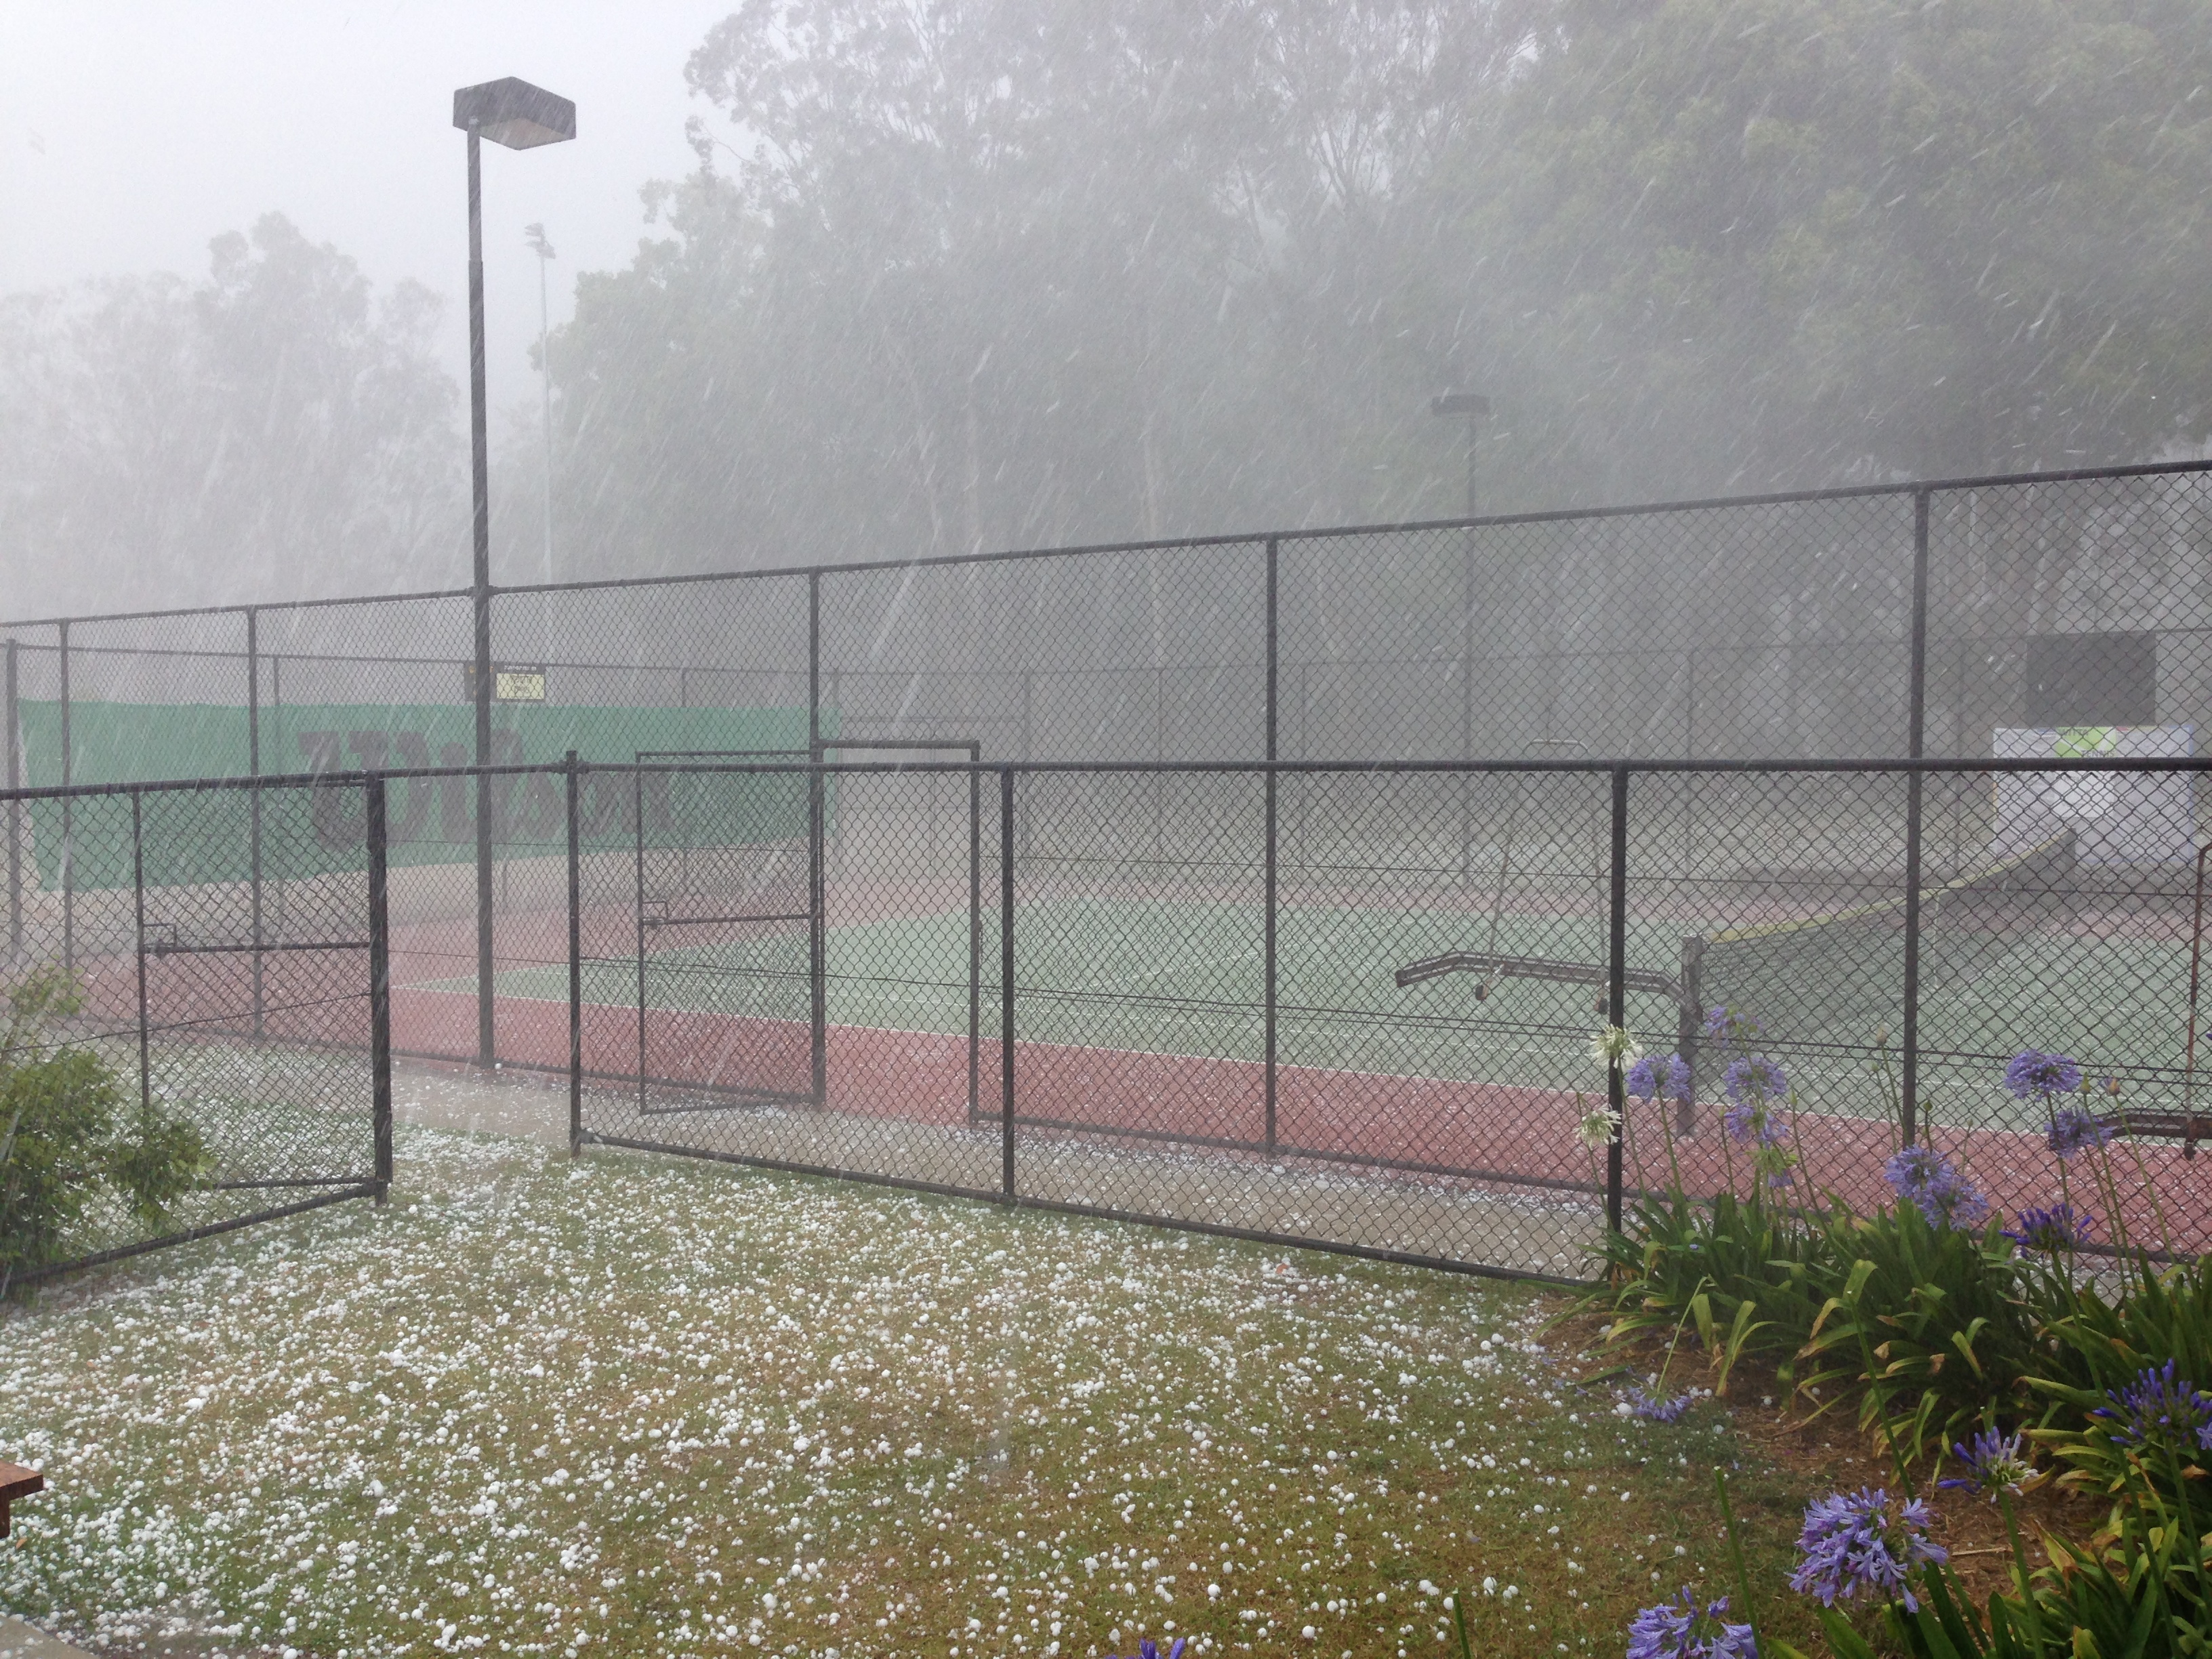 No 3 Hard court with hail